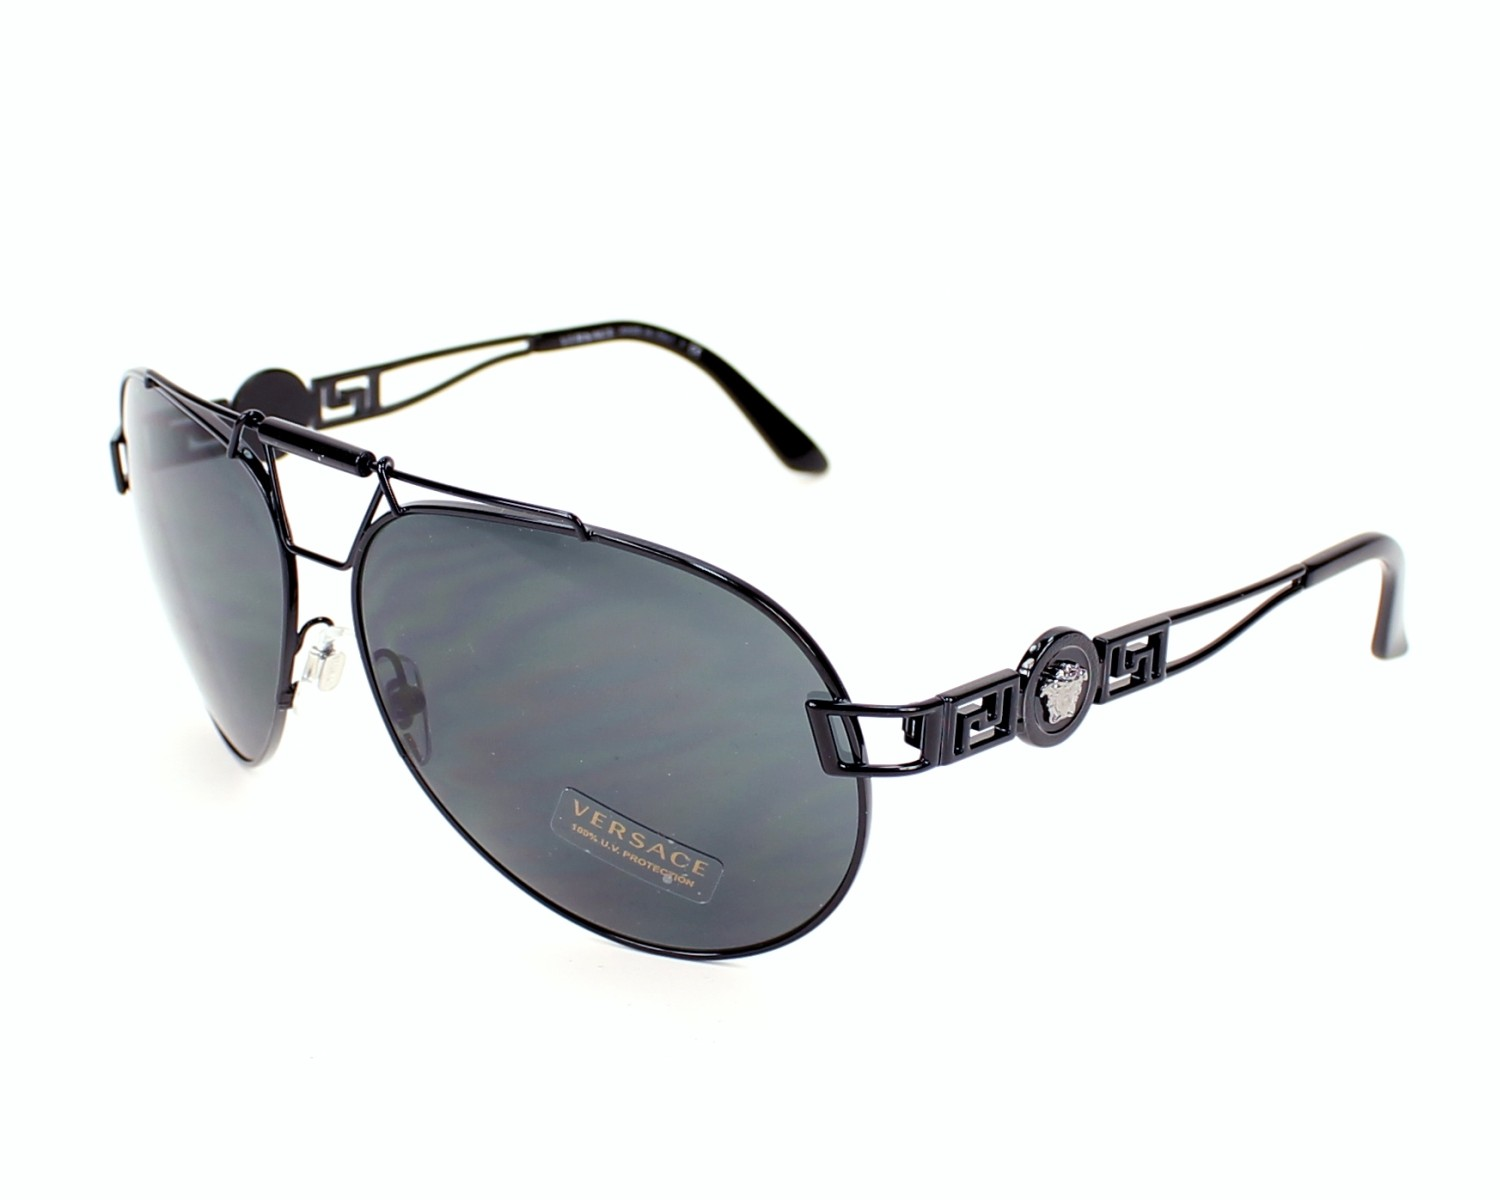 36beac1bc9 Sunglasses Versace VE-2160 1009 87 - Black profile view